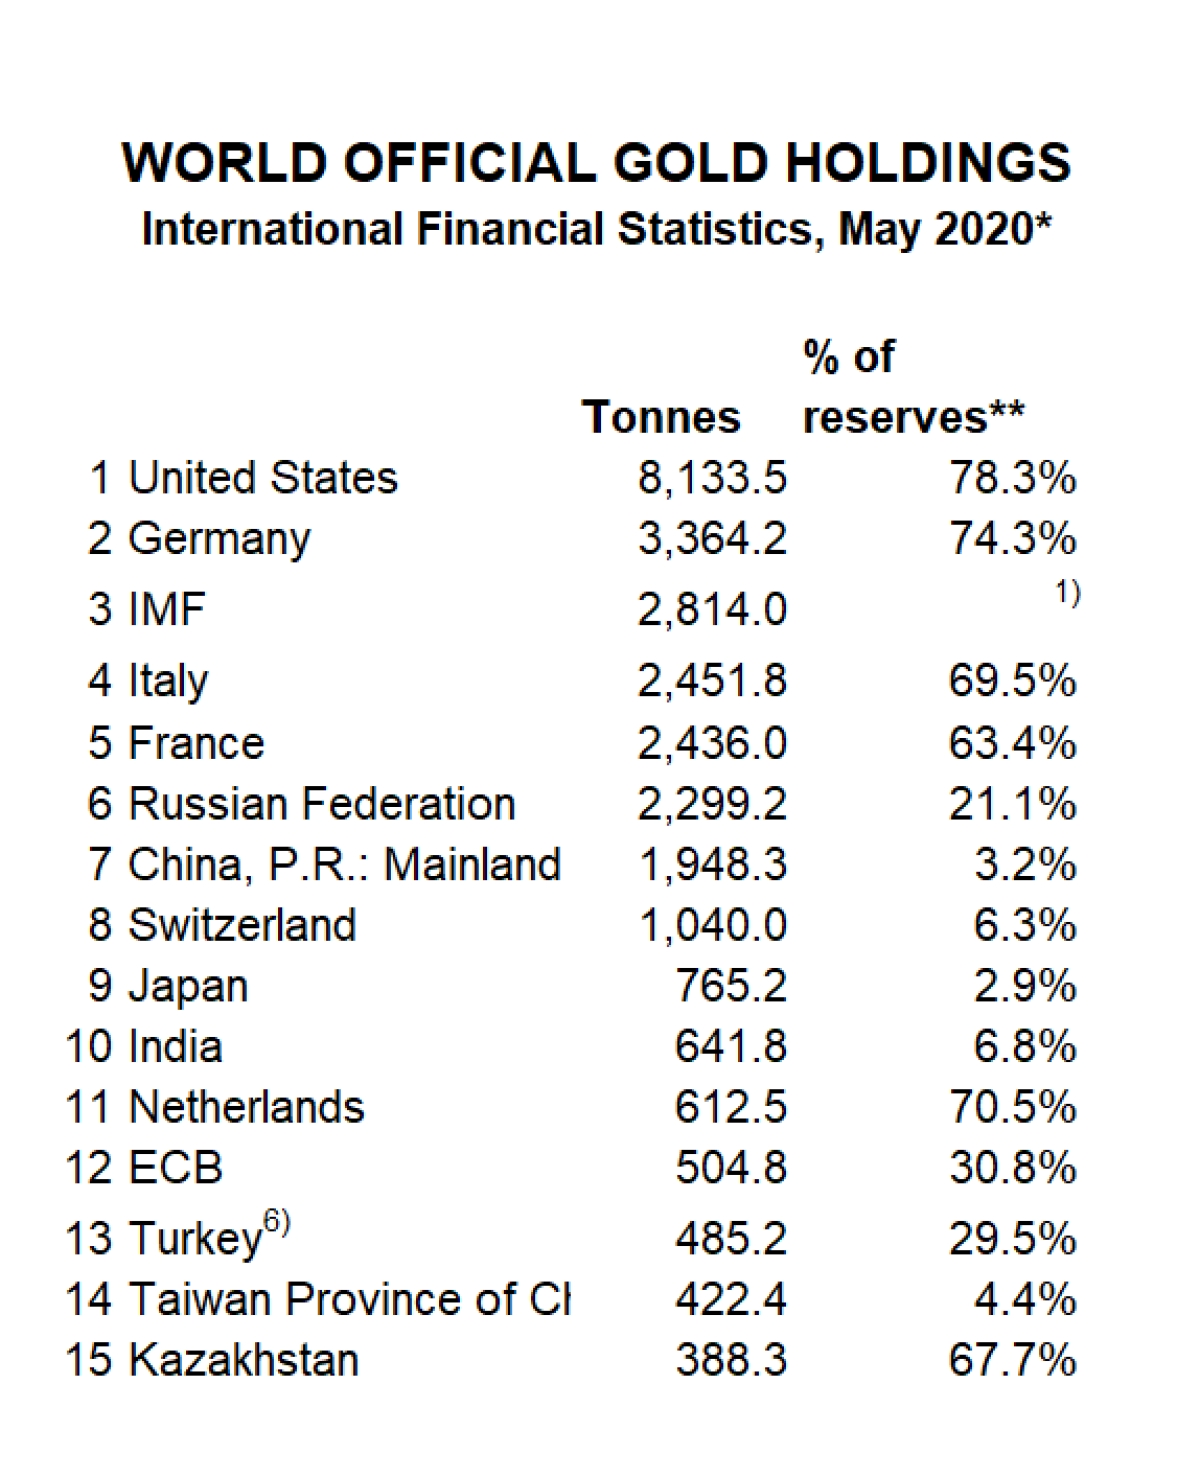 With 641.8 tonnes, India has the tenth largest gold reserve in the world, reveals World Gold Council data